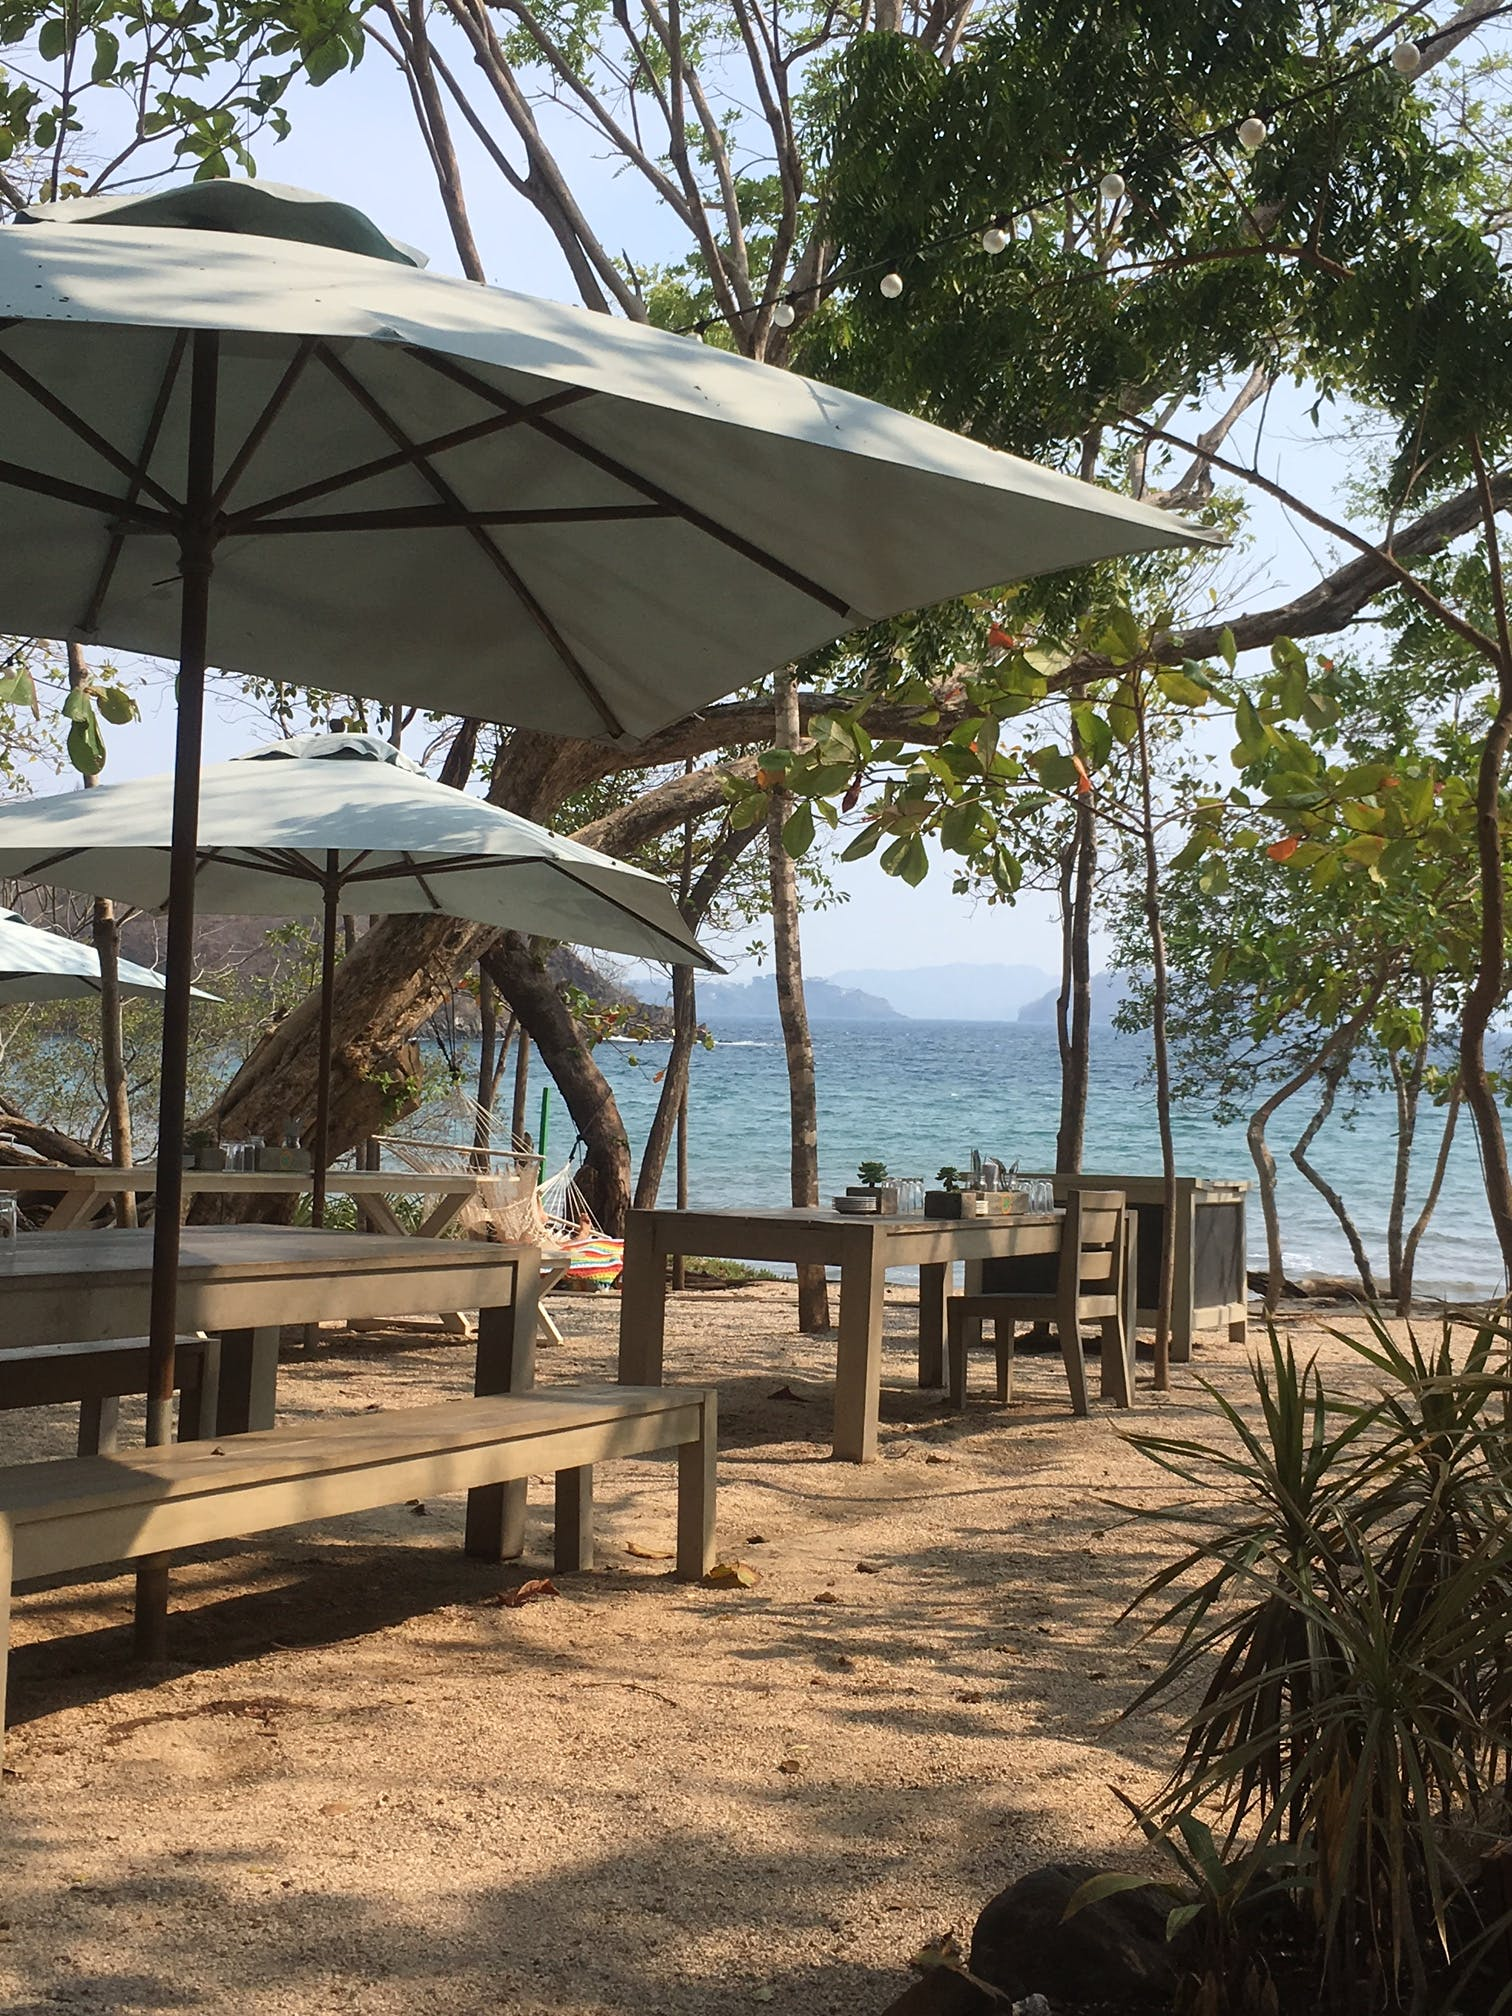 Limonada restaurant at Playa Danta